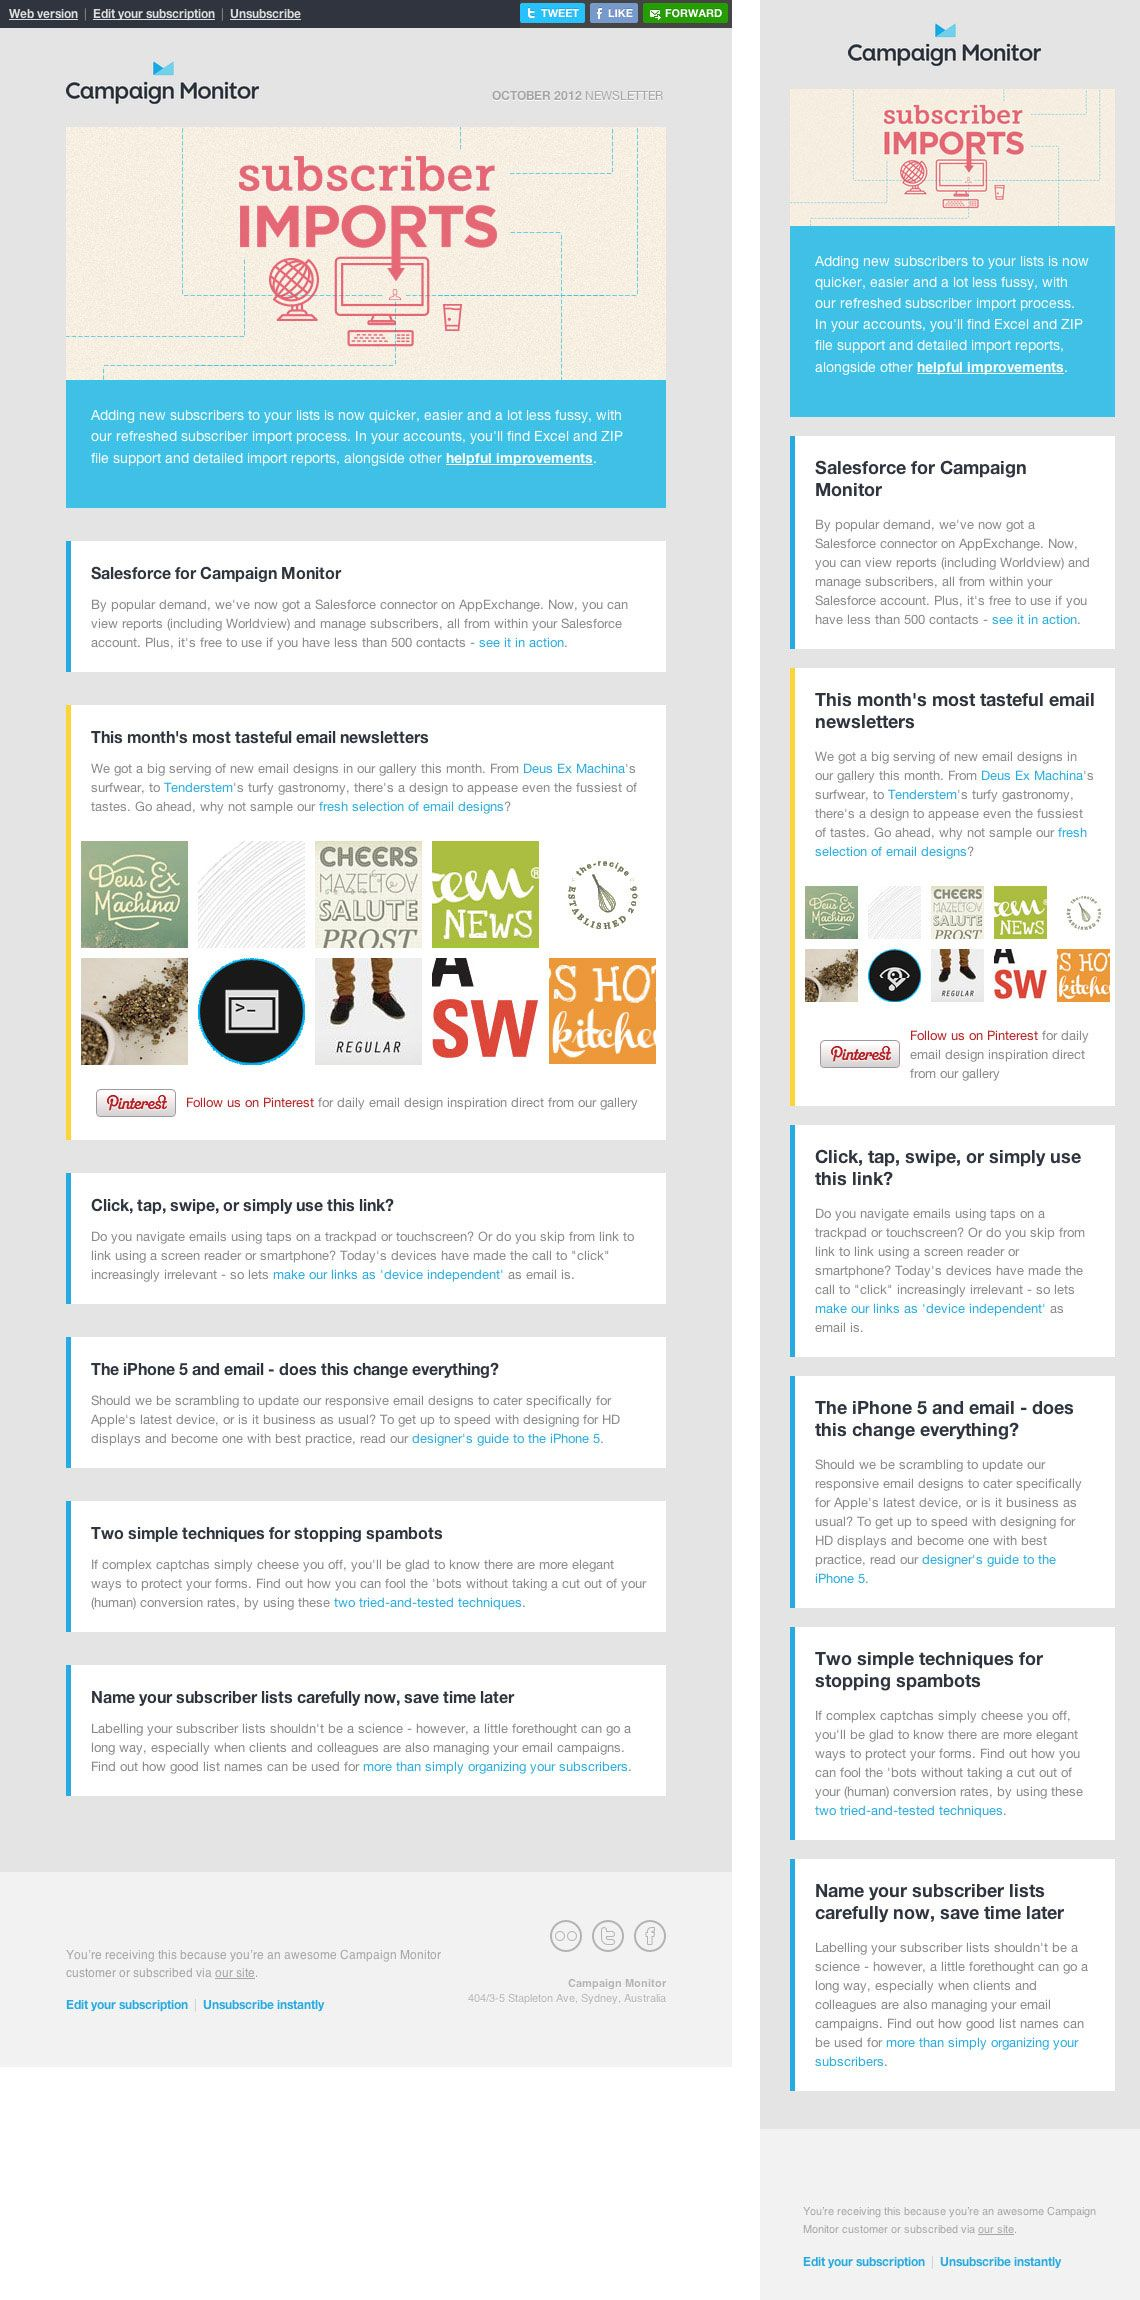 17 Best images about Responsive Email Examples on Pinterest ...